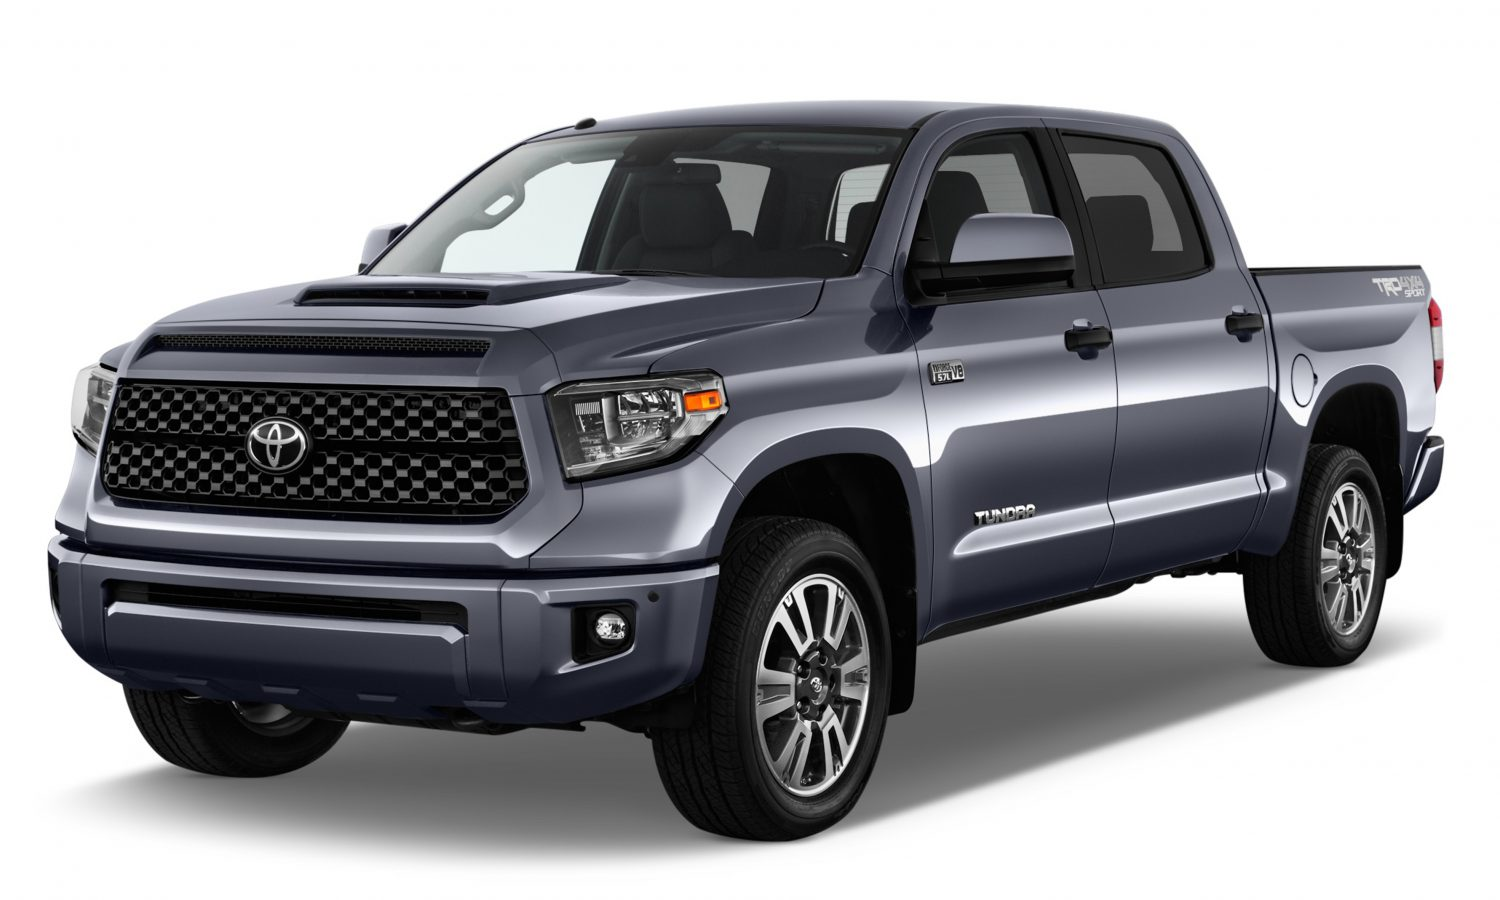 2018 Toyota Tundra Full-Size Pickup Does Everything in A Big Way